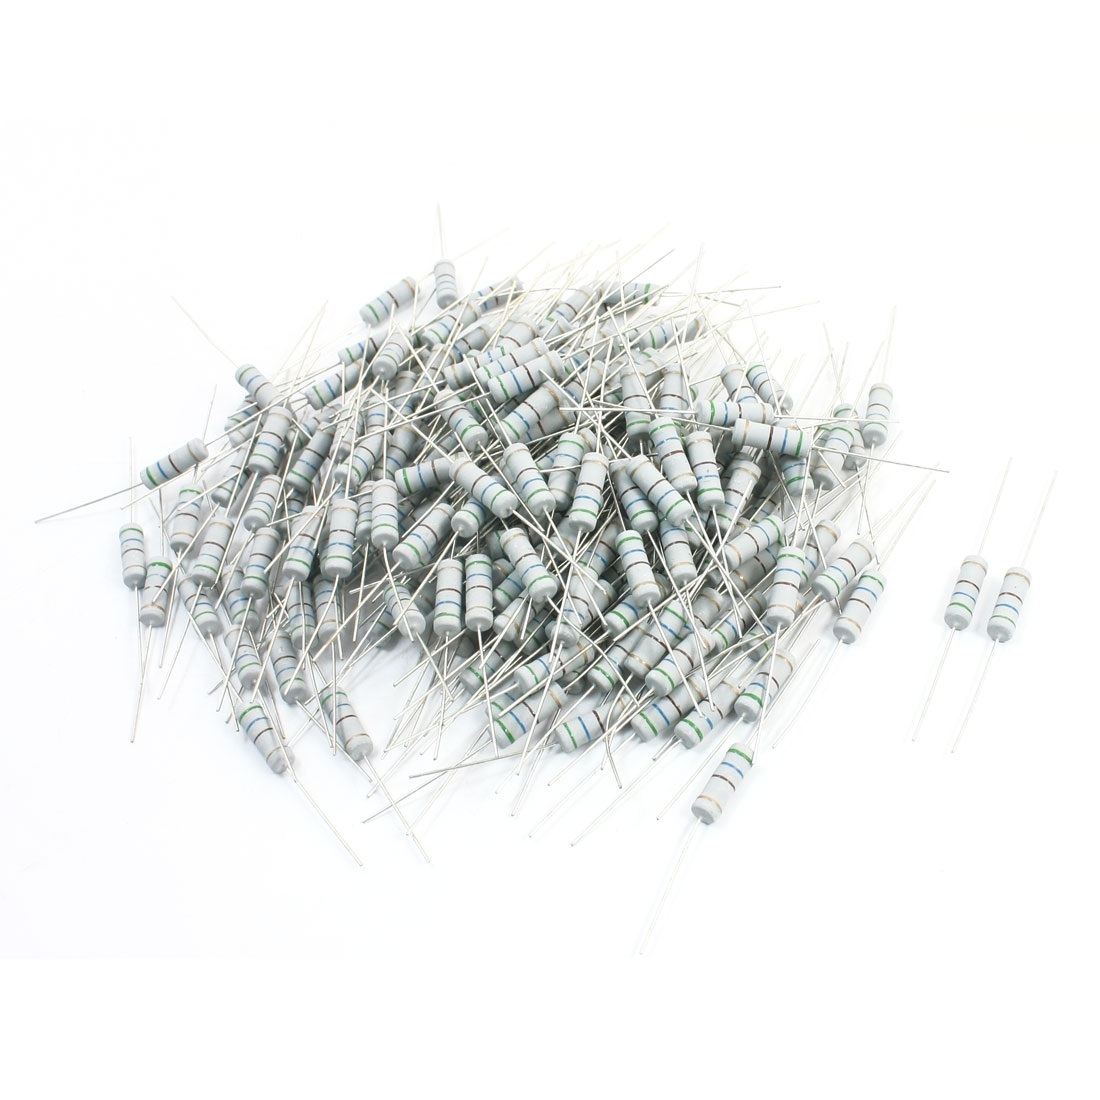 3W 560 Ohm 5% Tolerance Through Hole Metal Oxide Film Resistor 200Pcs